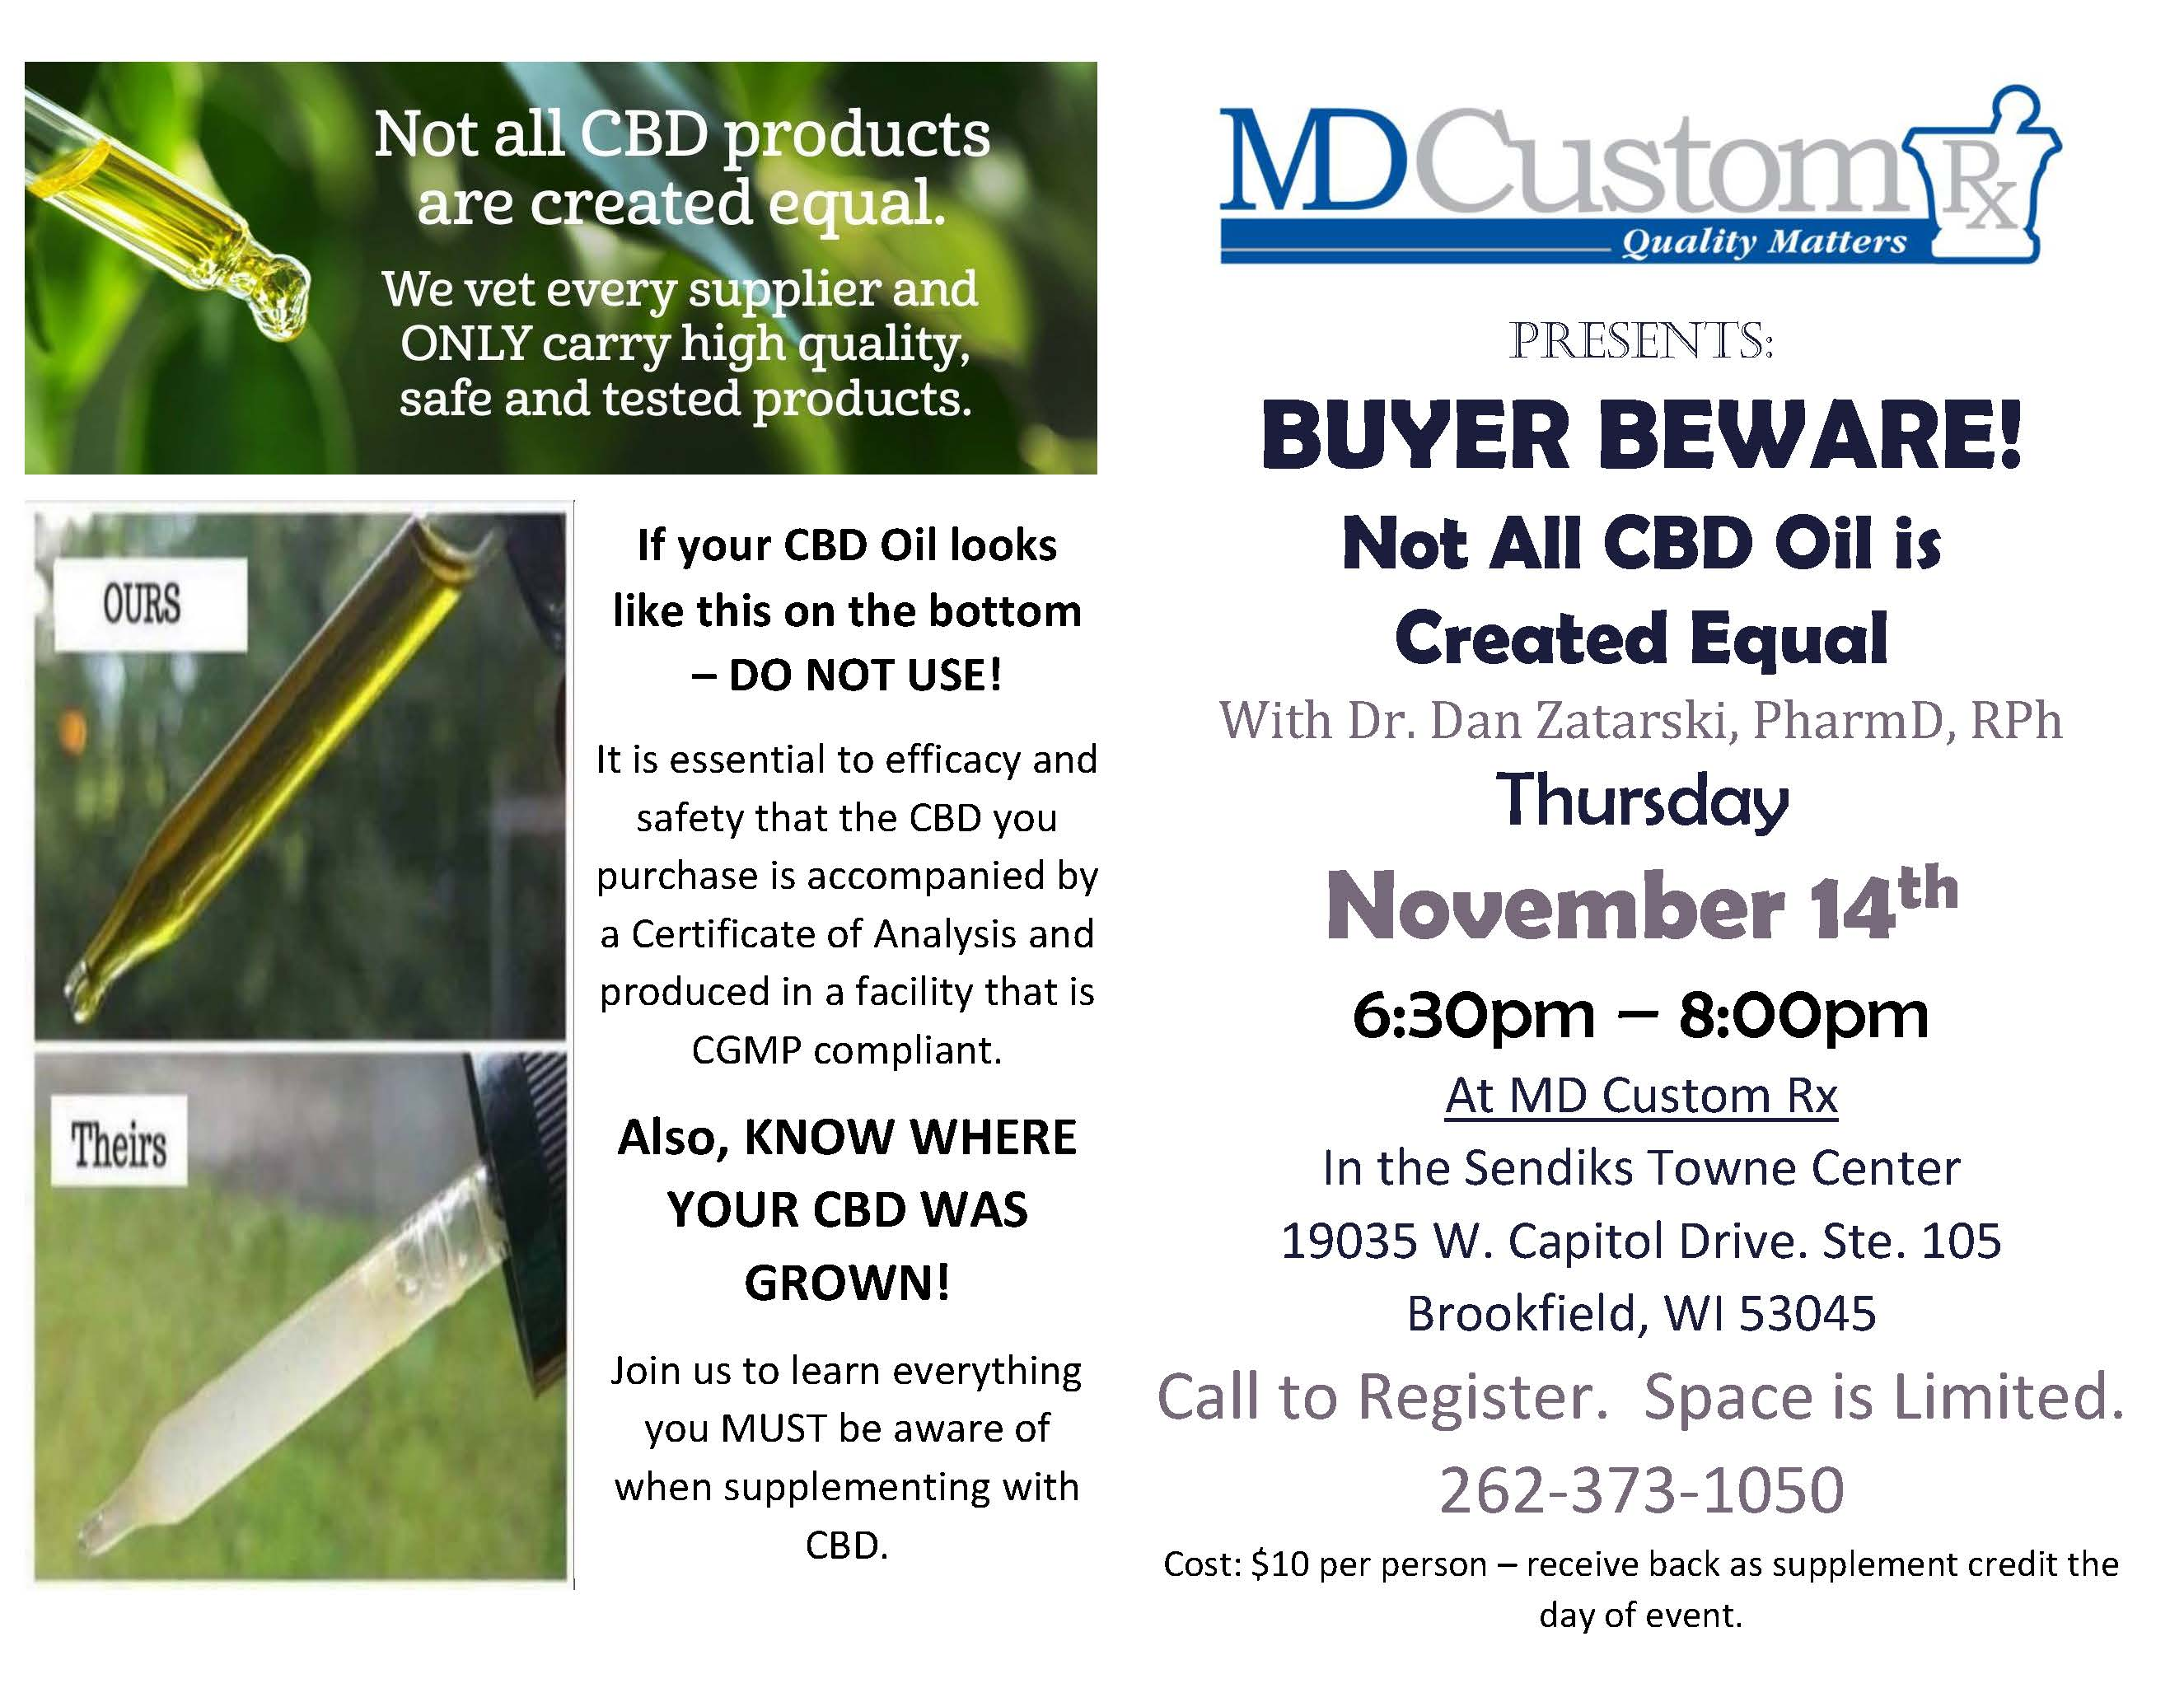 BUYER BEWARE - Not All CBD Oil is Created Equal